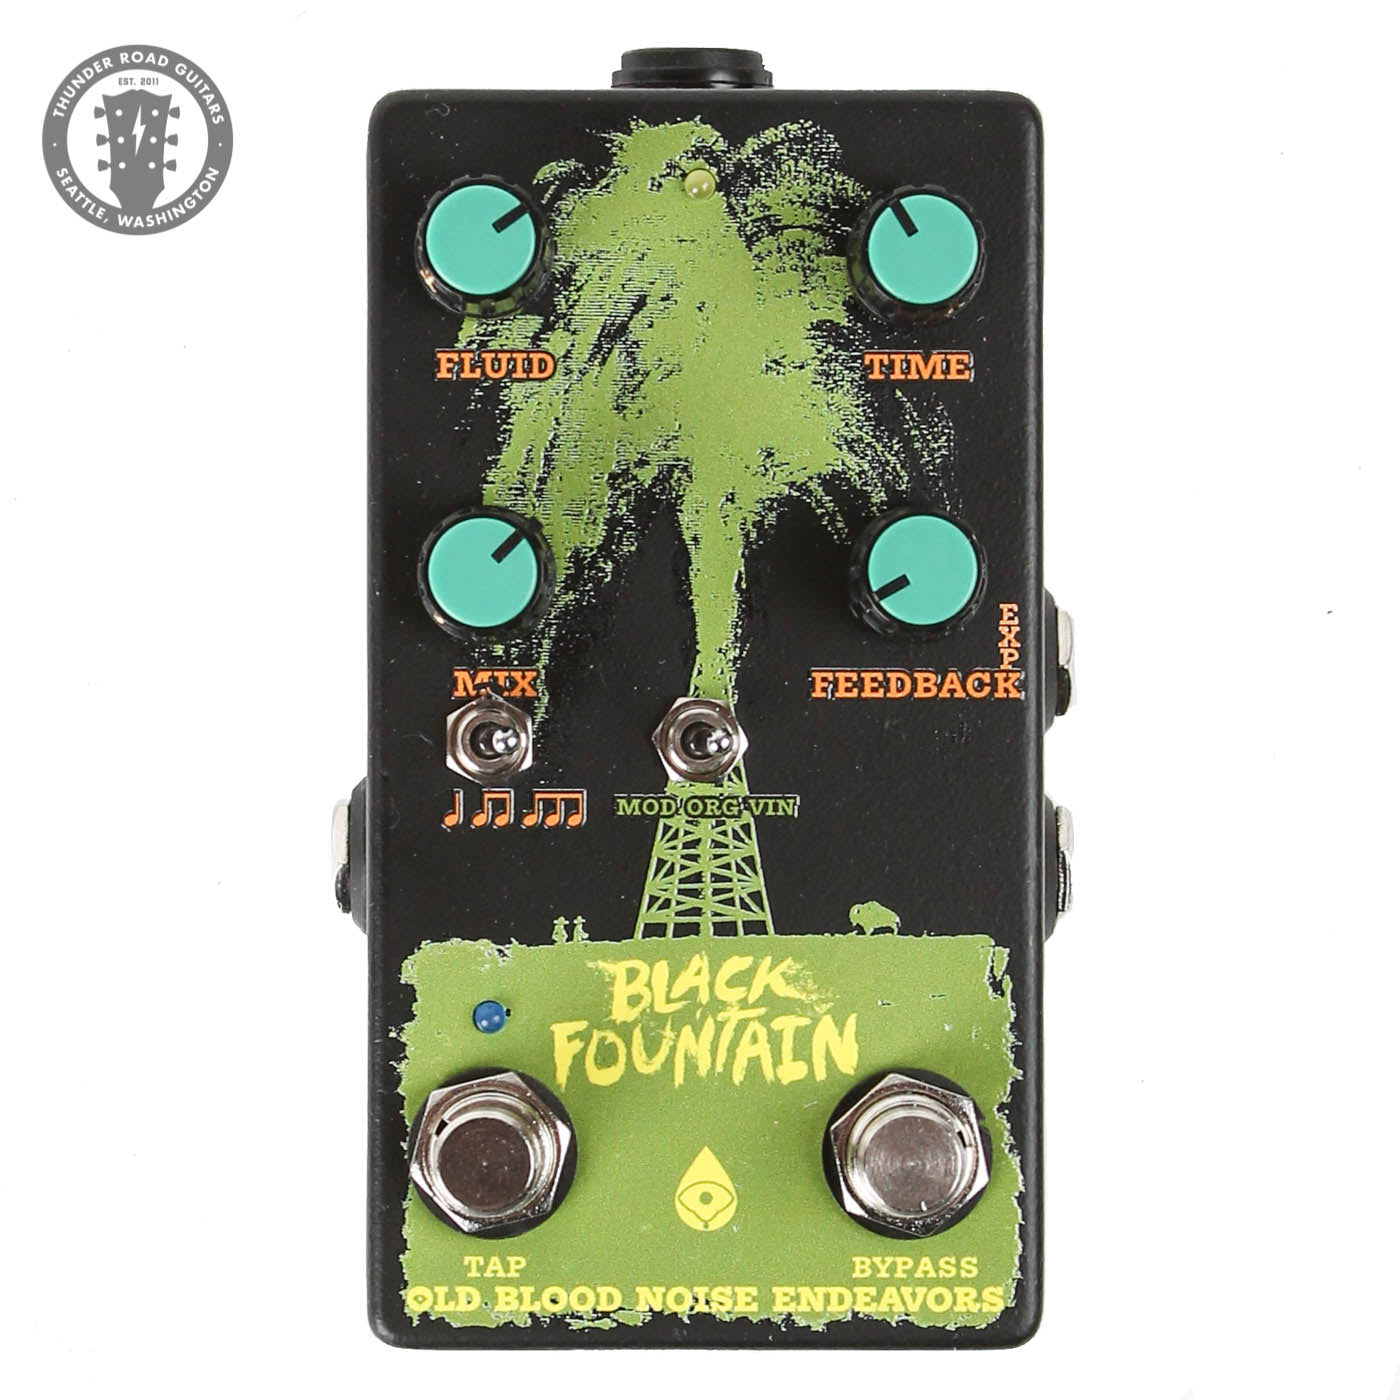 Old Blood Noise Endeavors TRG Exclusive Black Fountain!! image 2